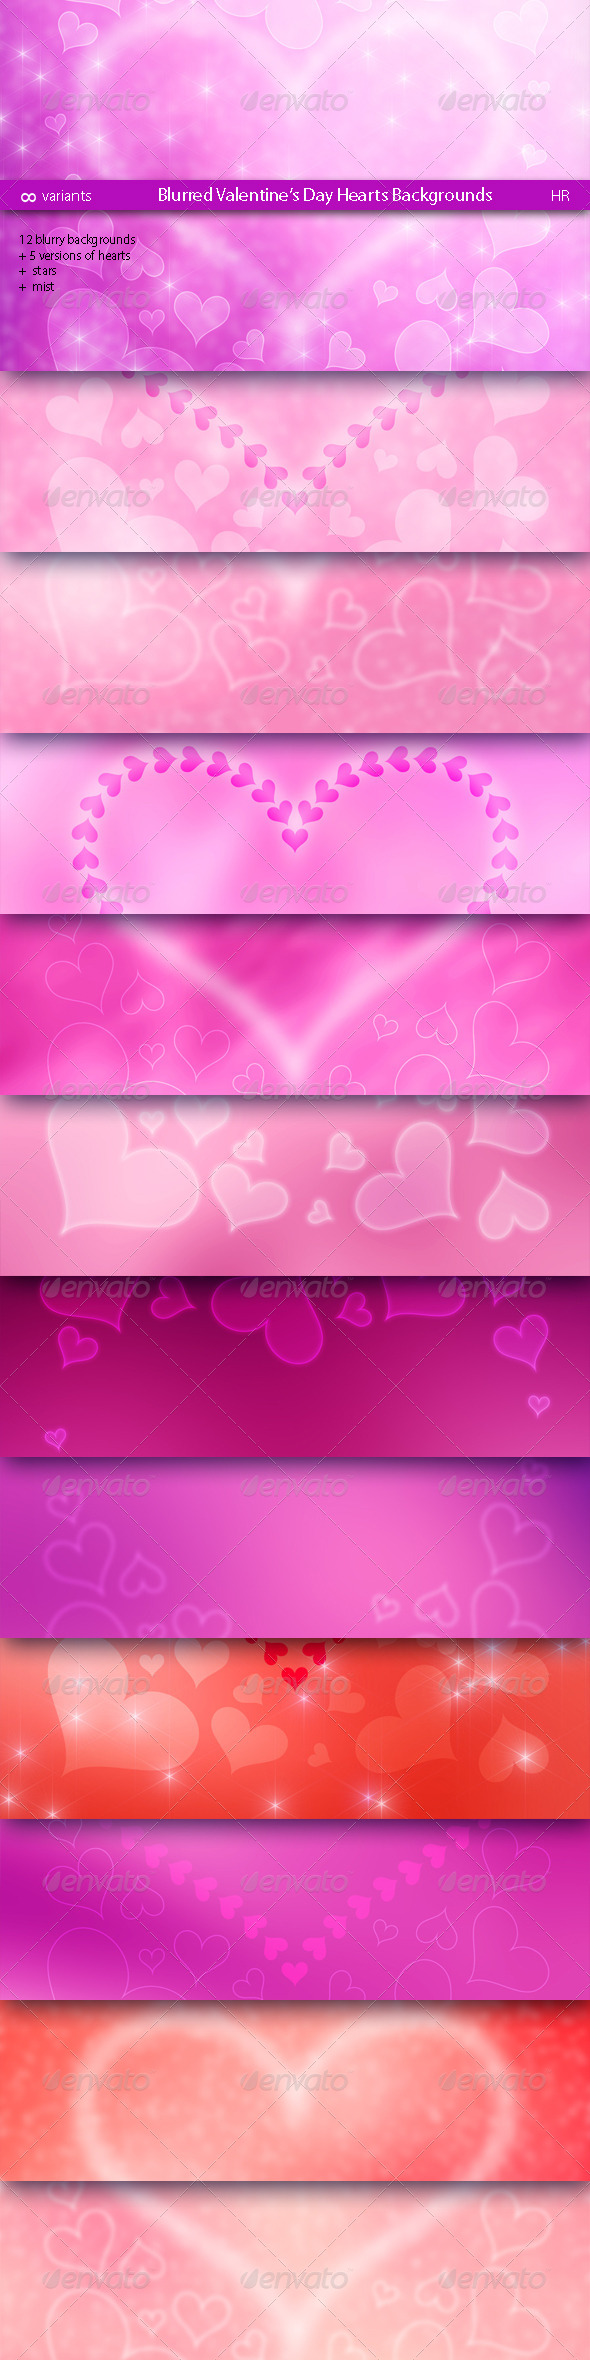 Blurred Valentine's Day Hearts Backgrounds - Miscellaneous Backgrounds